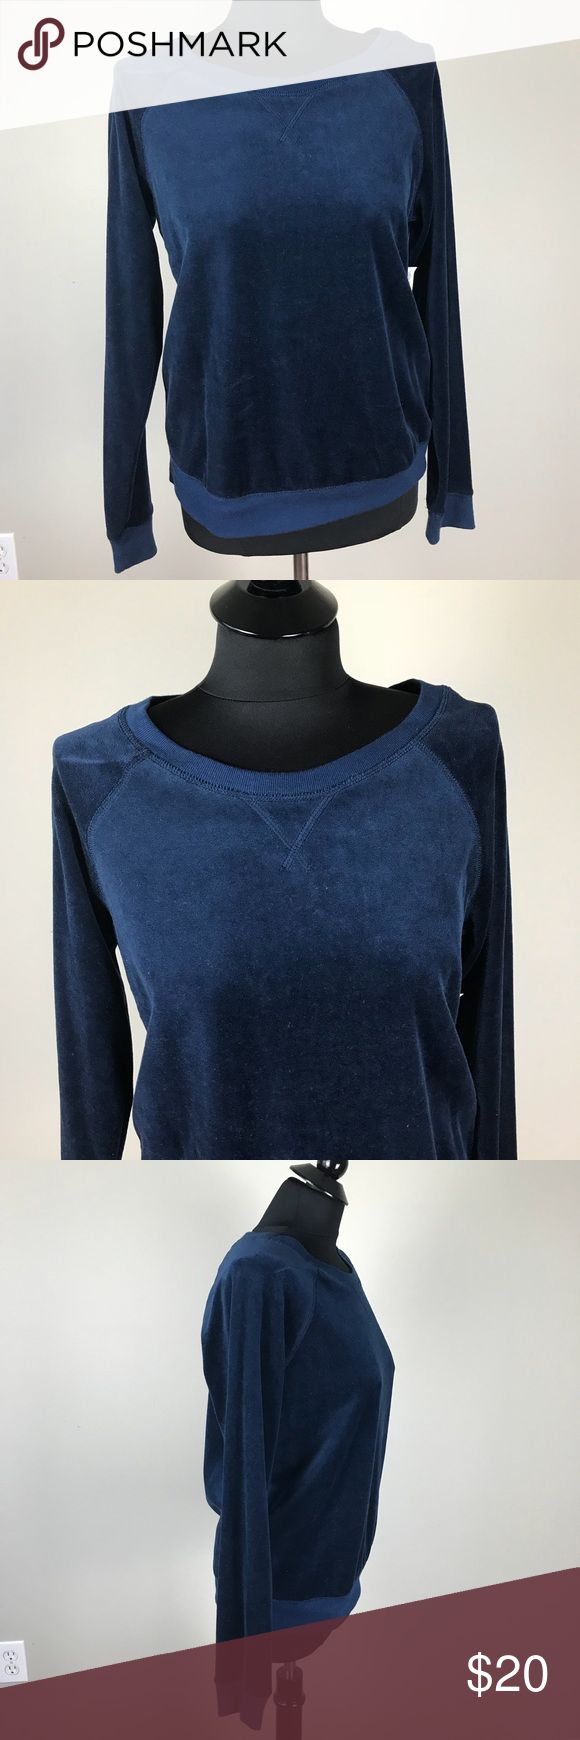 Old Navy Blue Velour Sweatshirt NWT New with tags Old Navy Blue Velour material Sweatshirt. Old Navy Tops Sweatshirts & Hoodies